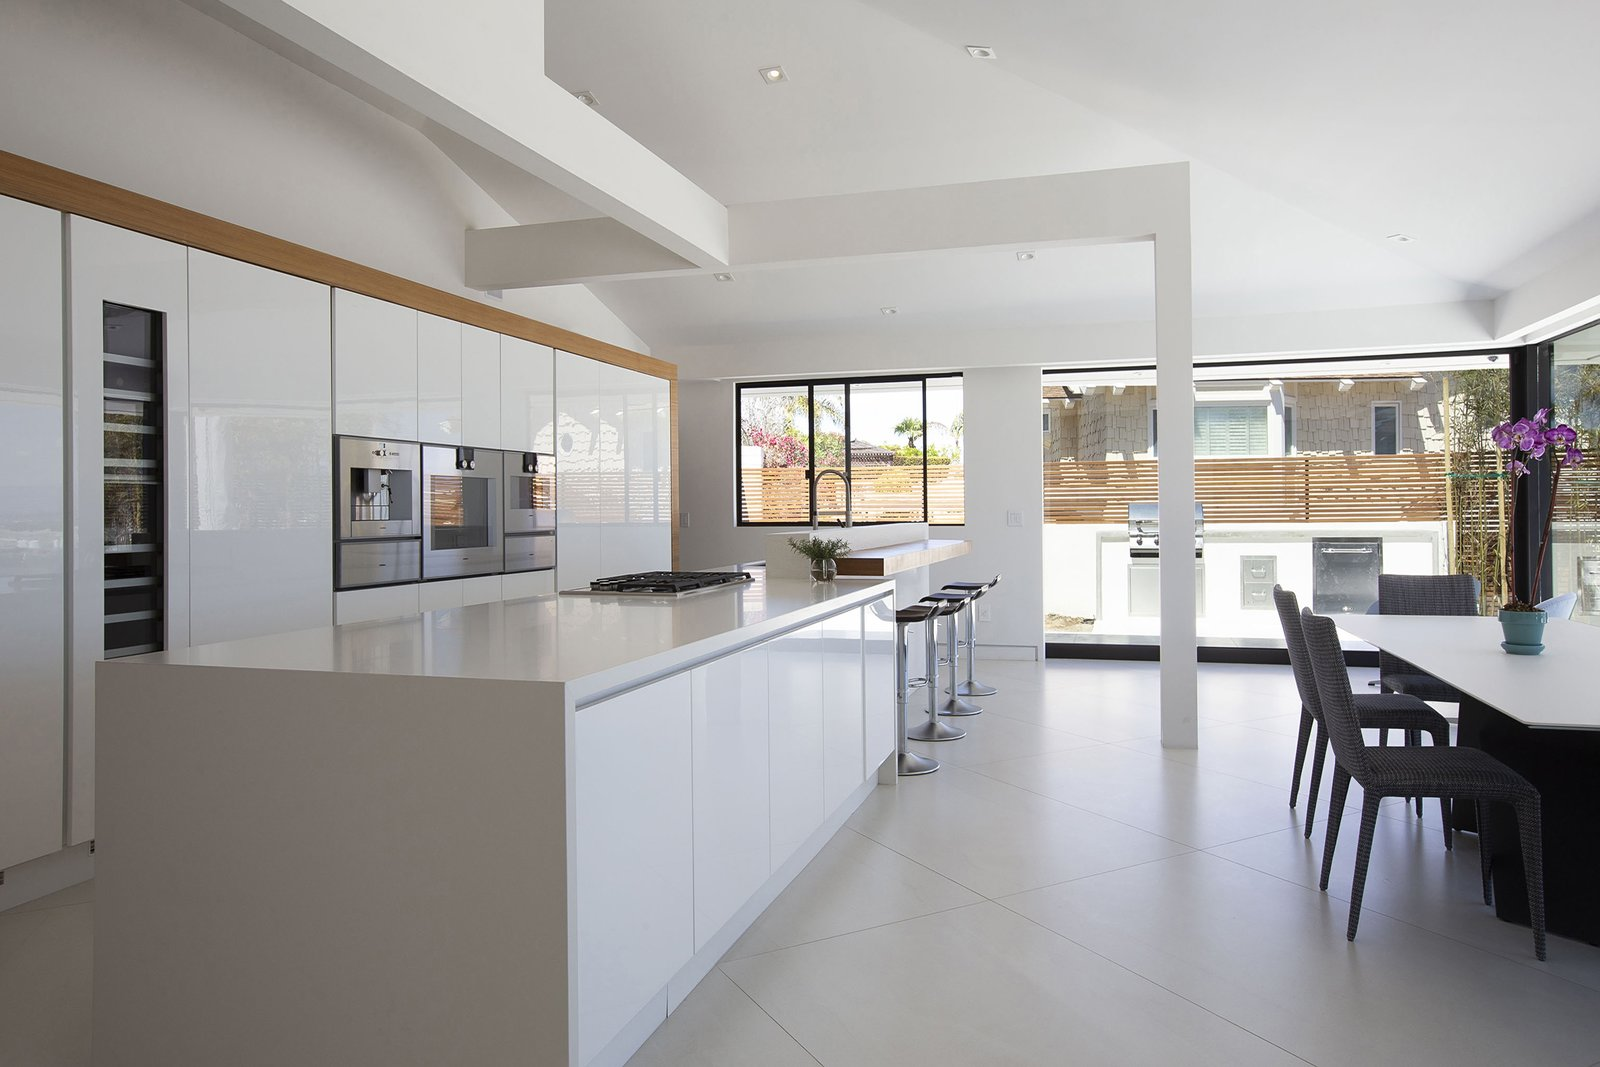 Kitchen, Microwave, White, Range, Quartzite, Wall Oven, Recessed, Ceramic Tile, and Wine Cooler The open kitchen/dining room is bright and airy.  Best Kitchen Microwave Wine Cooler White Photos from A Renovated Midcentury in San Diego Is Sharp and Sustainable